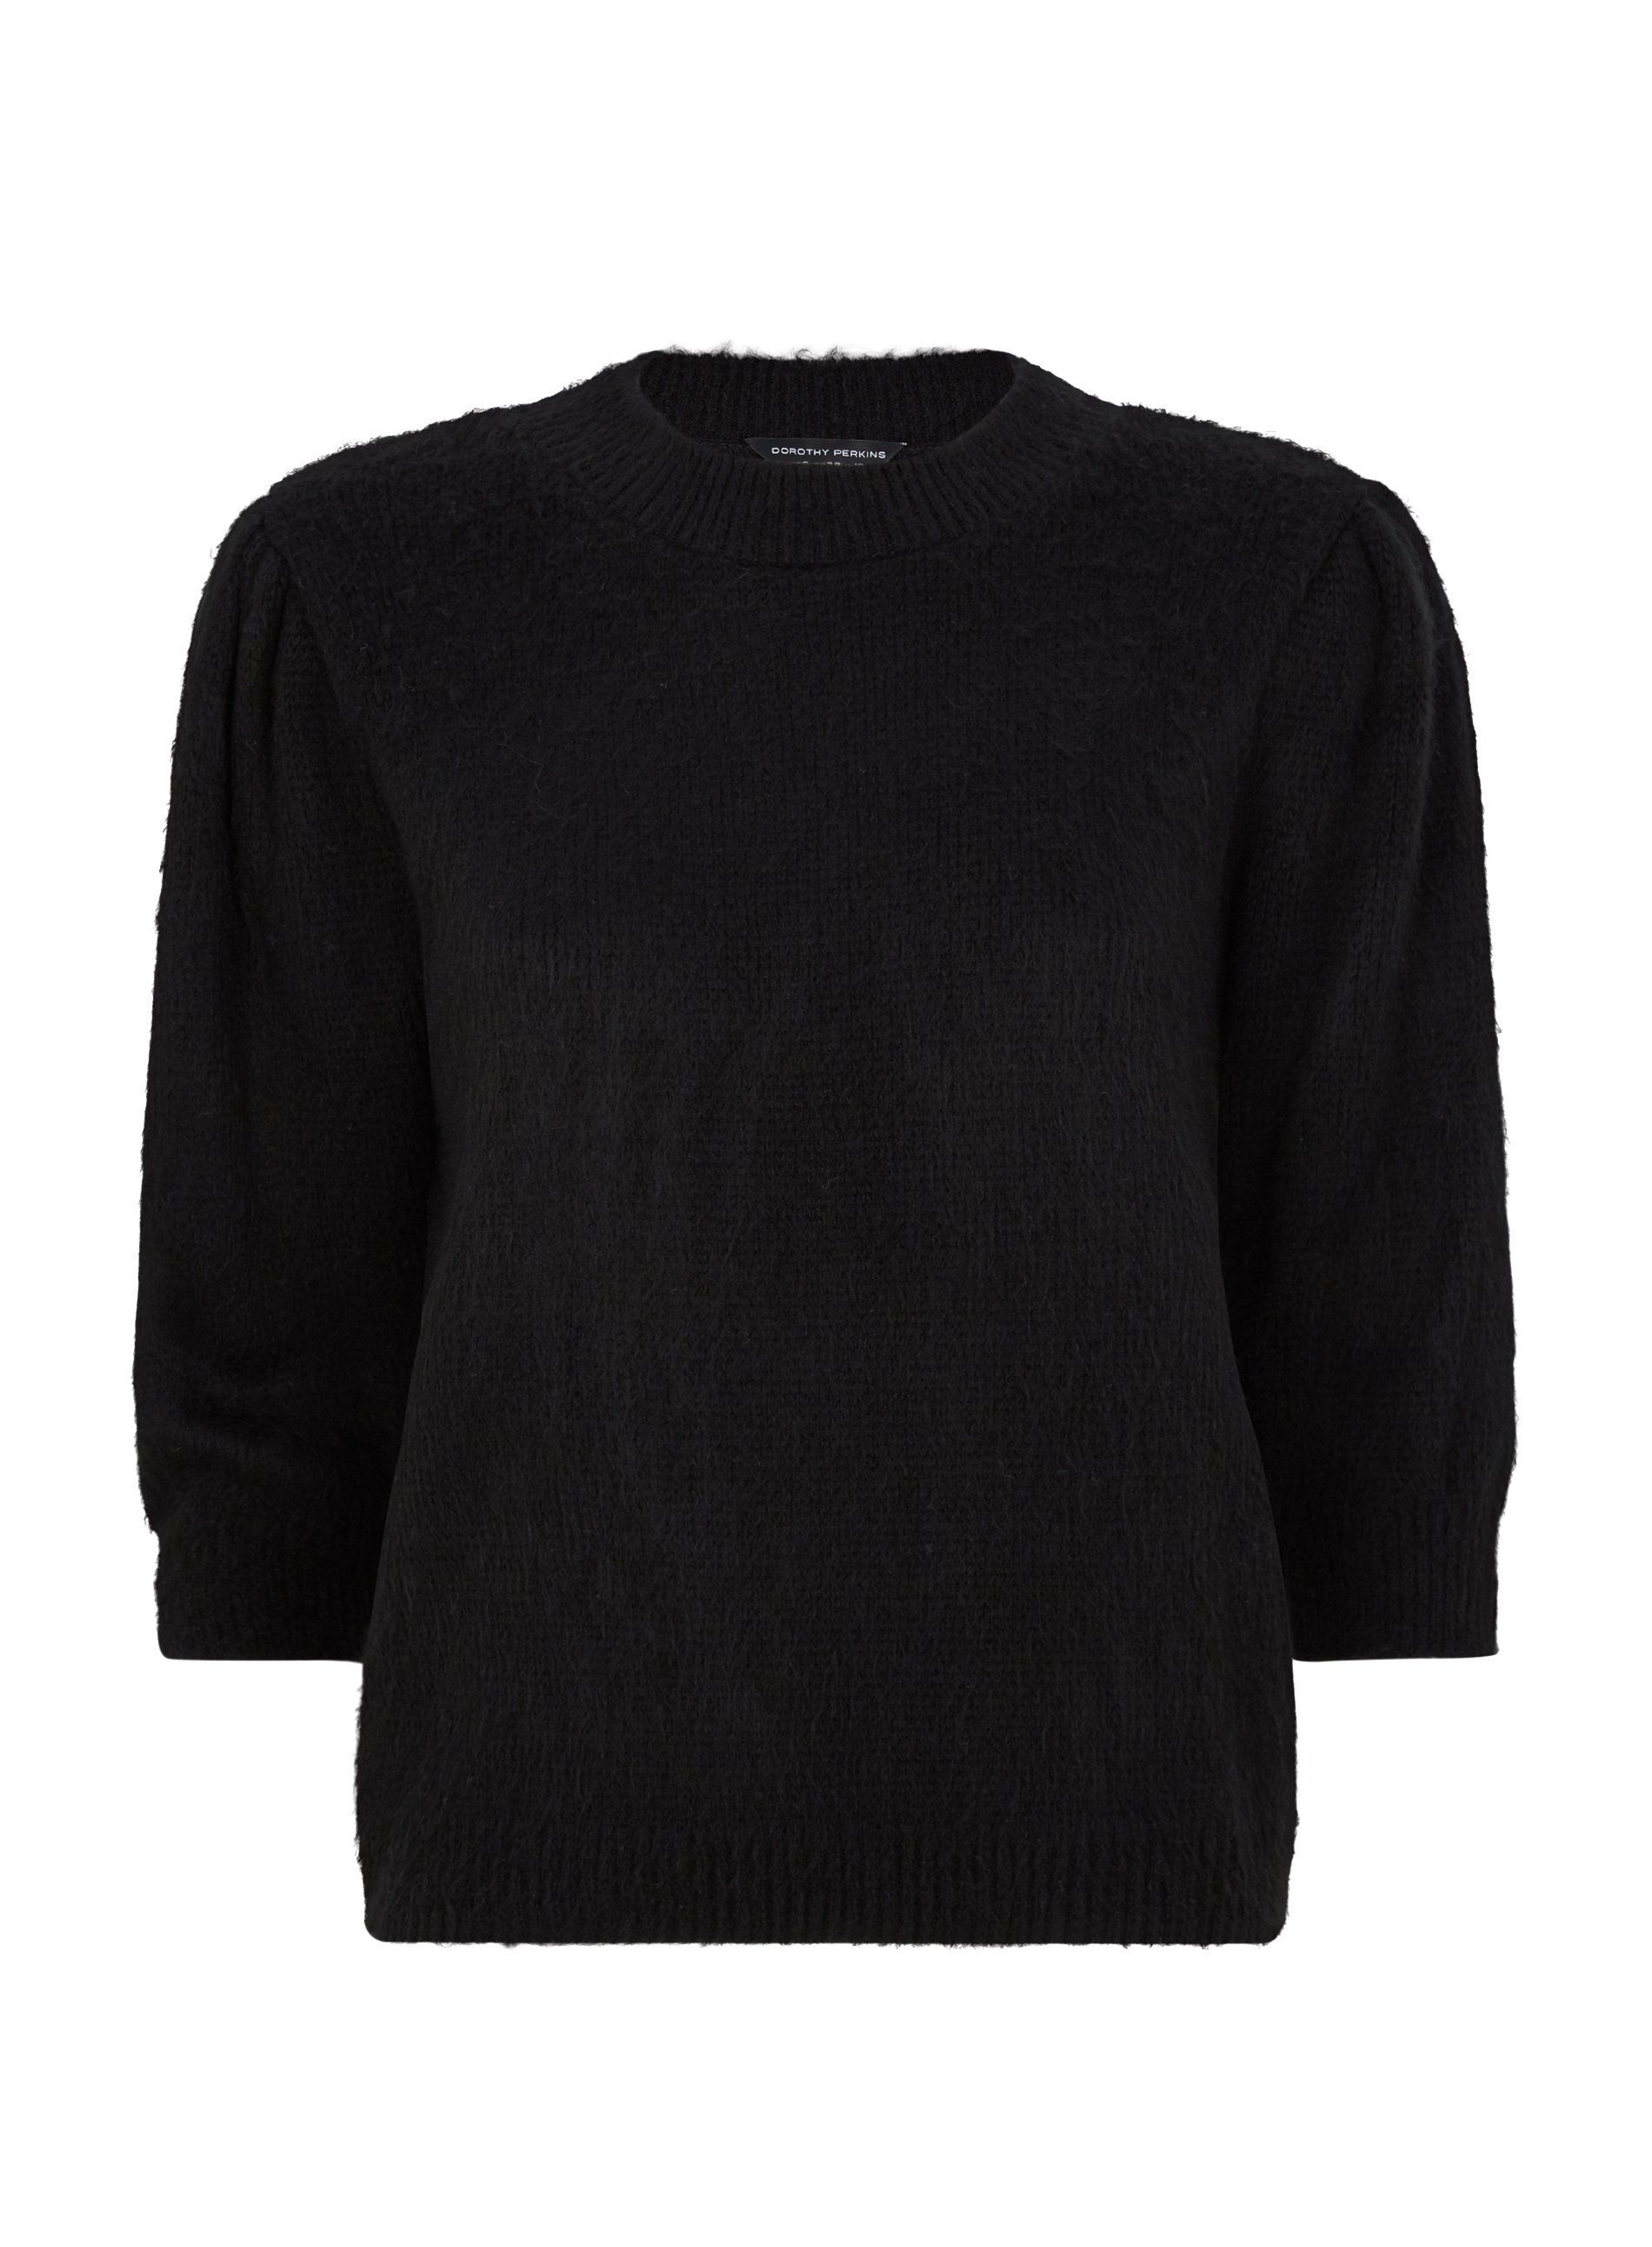 Dorothy Perkins Womens Black Knitted T Shirt 3/4 Sleeve Blouse Top Round Neck